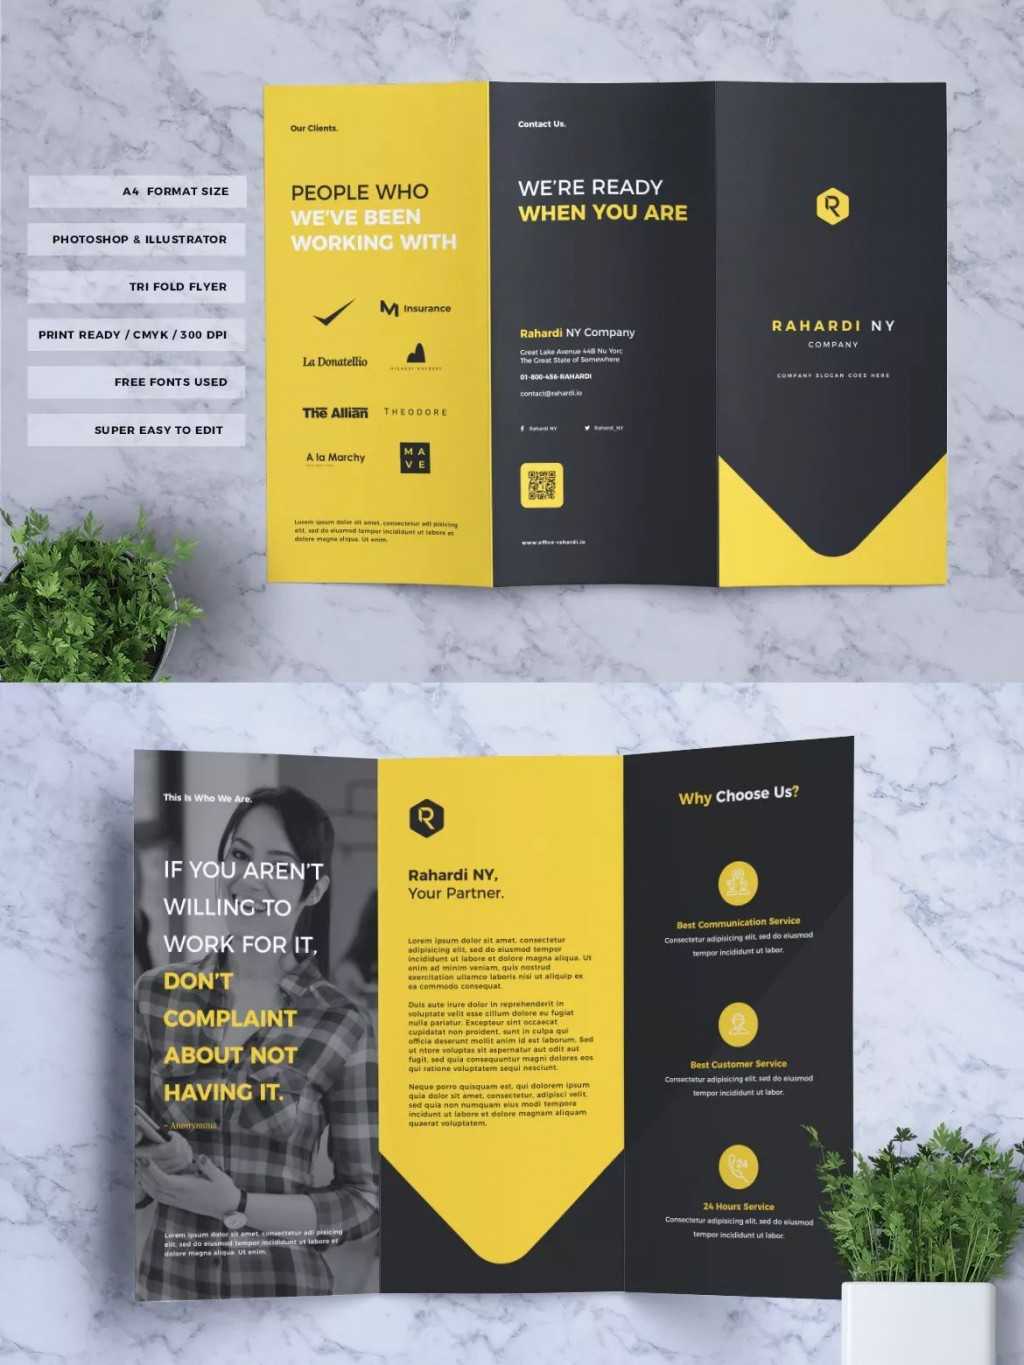 003 Shocking Photoshop Brochure Template Psd Free Download Inspiration Large